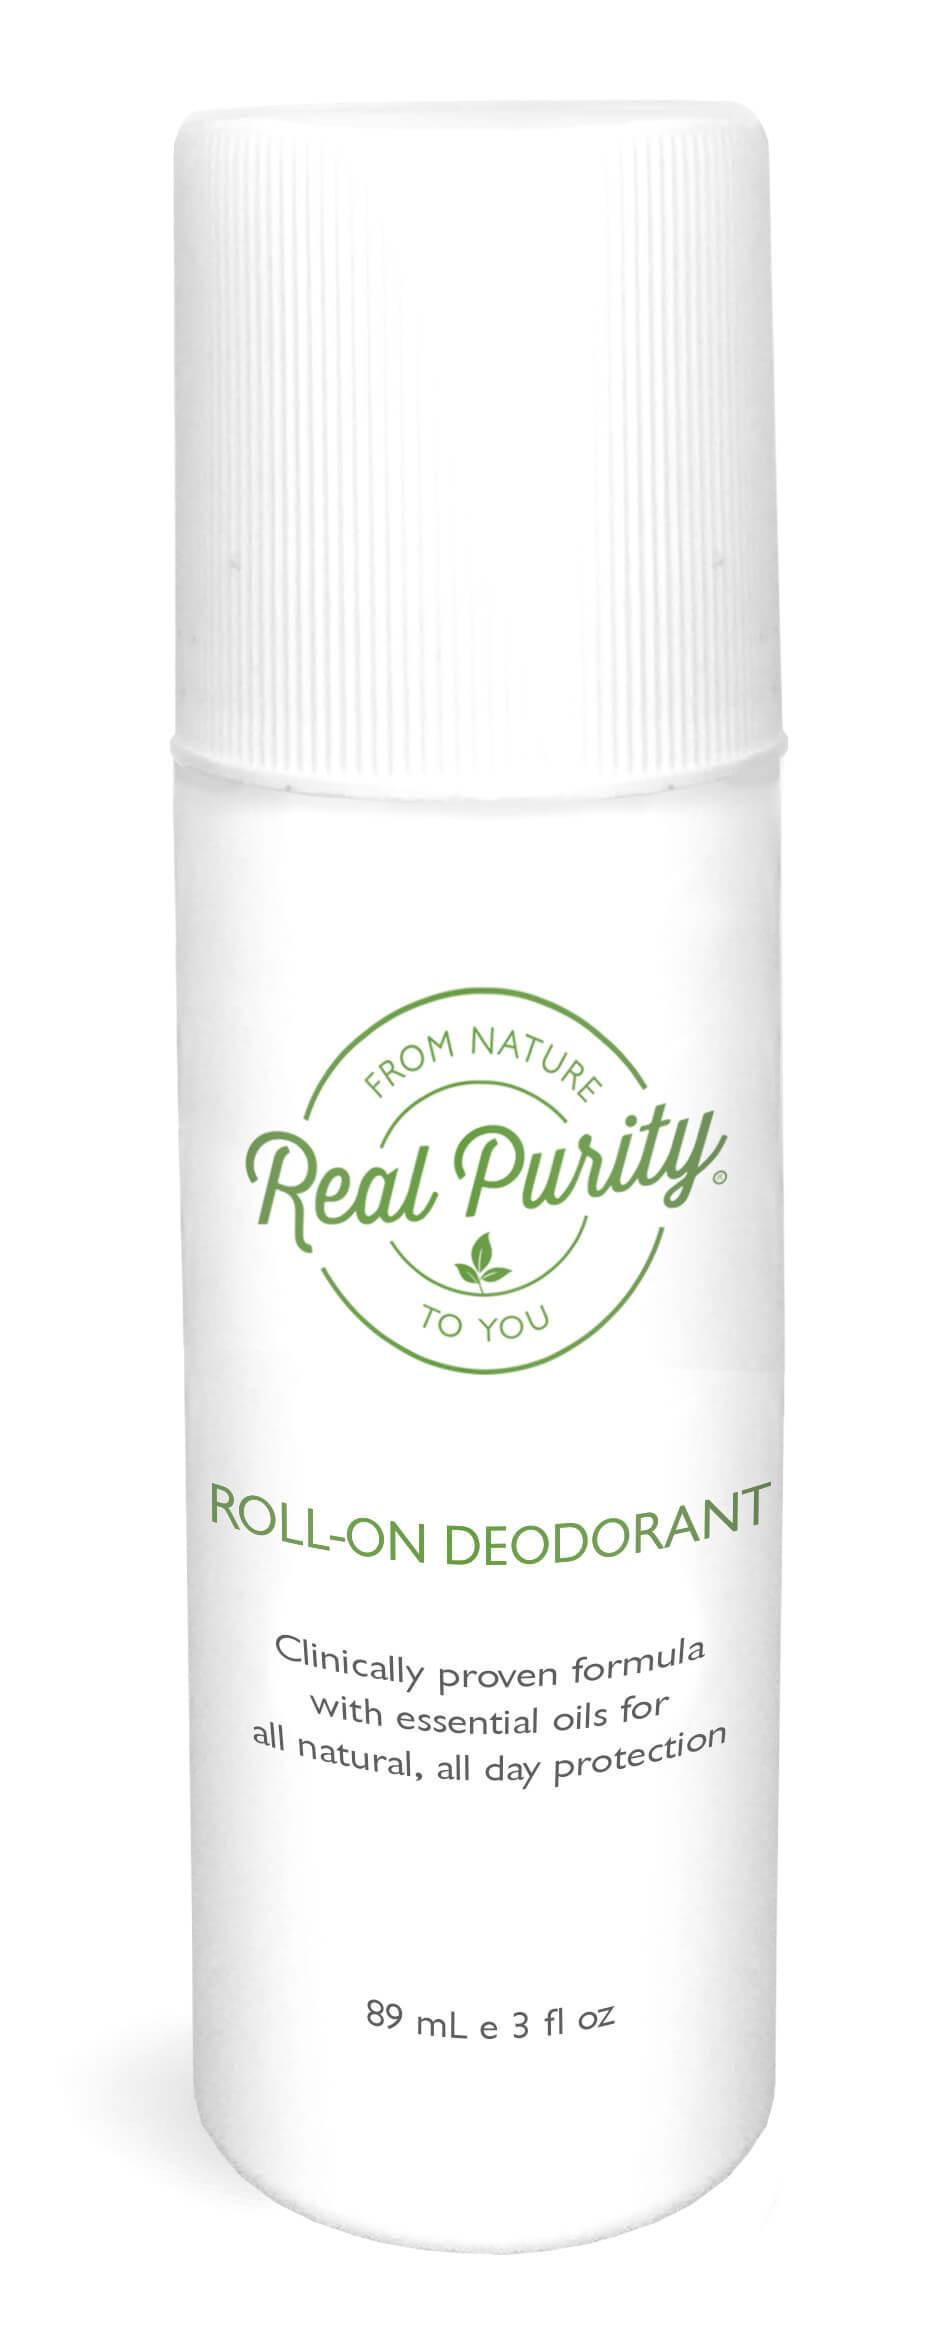 Køb Real Purity Roll-on Deodorant - 89 ml. til 159,00 DKK